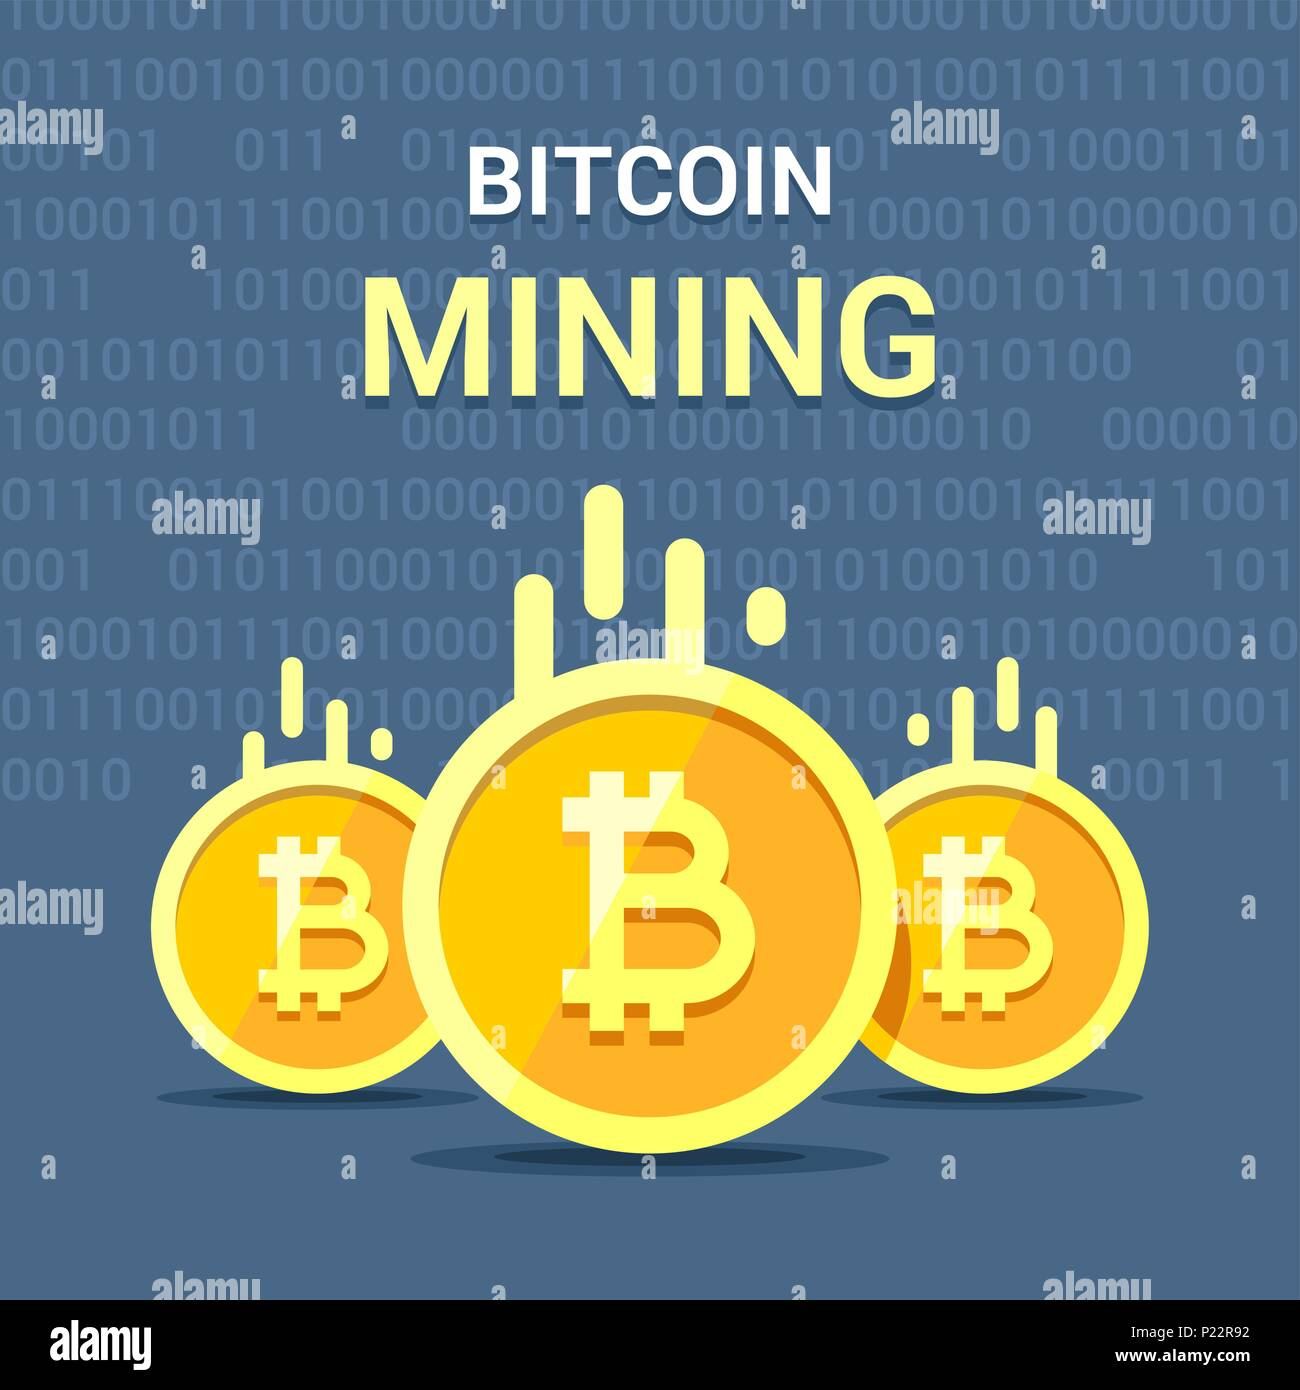 Colorful Flat Vector Illustration Of Cryptocurrency Bitcoin Process Mining Concept